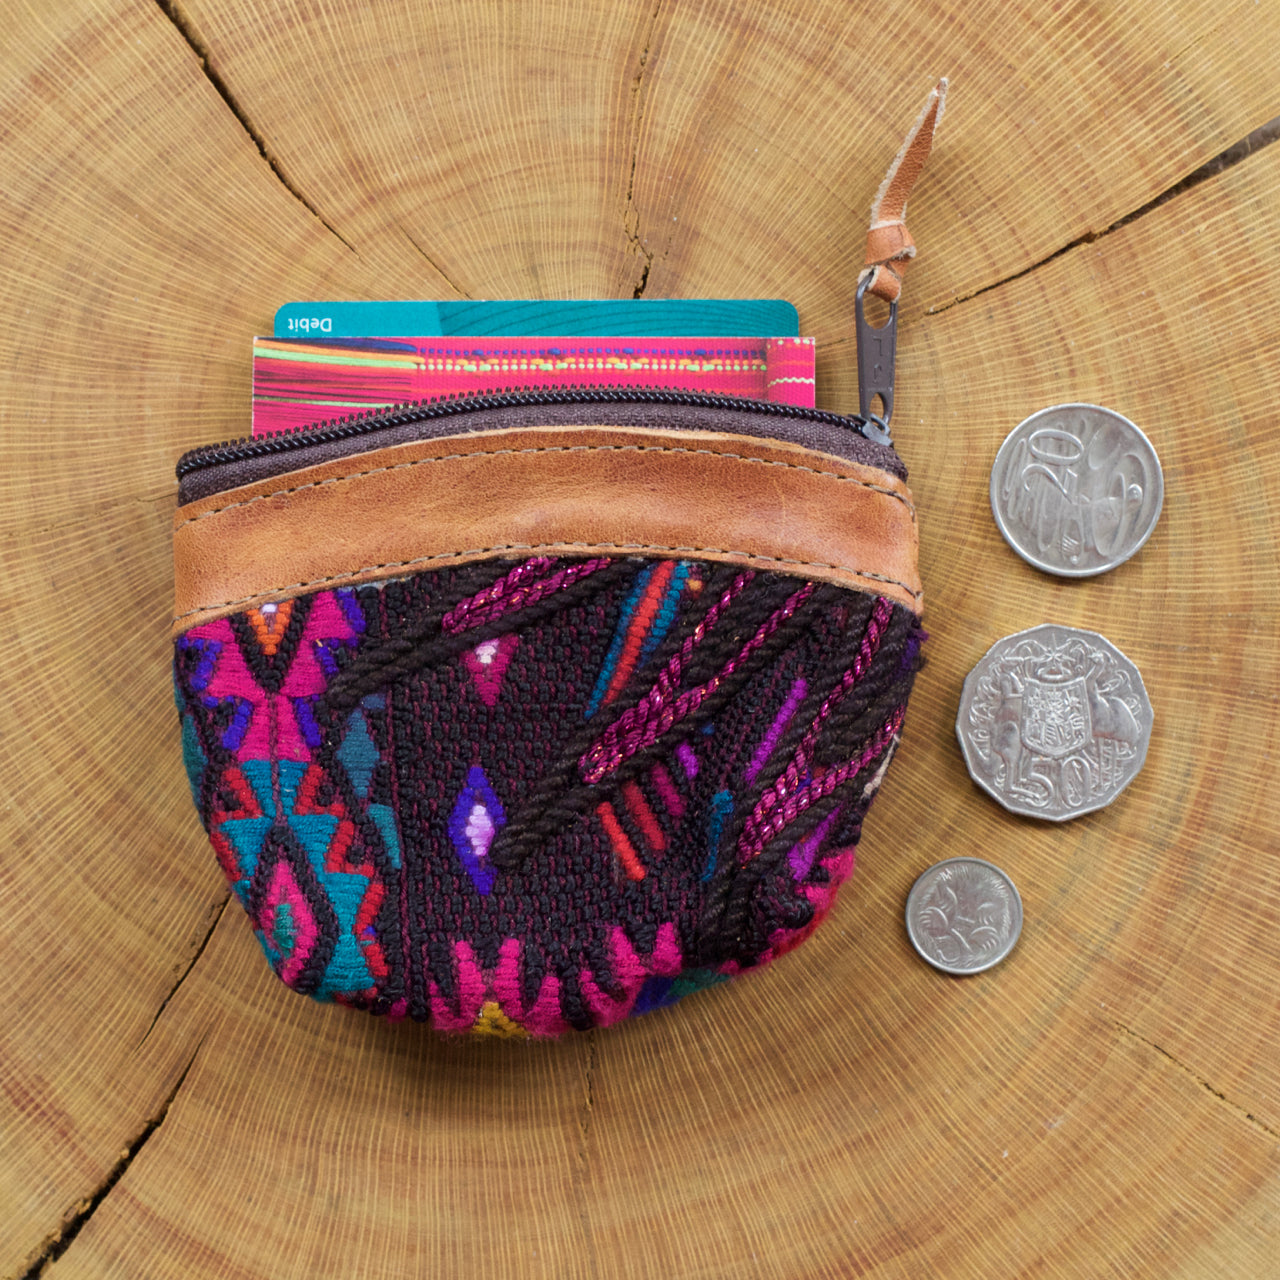 Pana Coin Pouch 27  Coin Pouch Purple - Cielo Collective handmade with tradition creativity and integrity